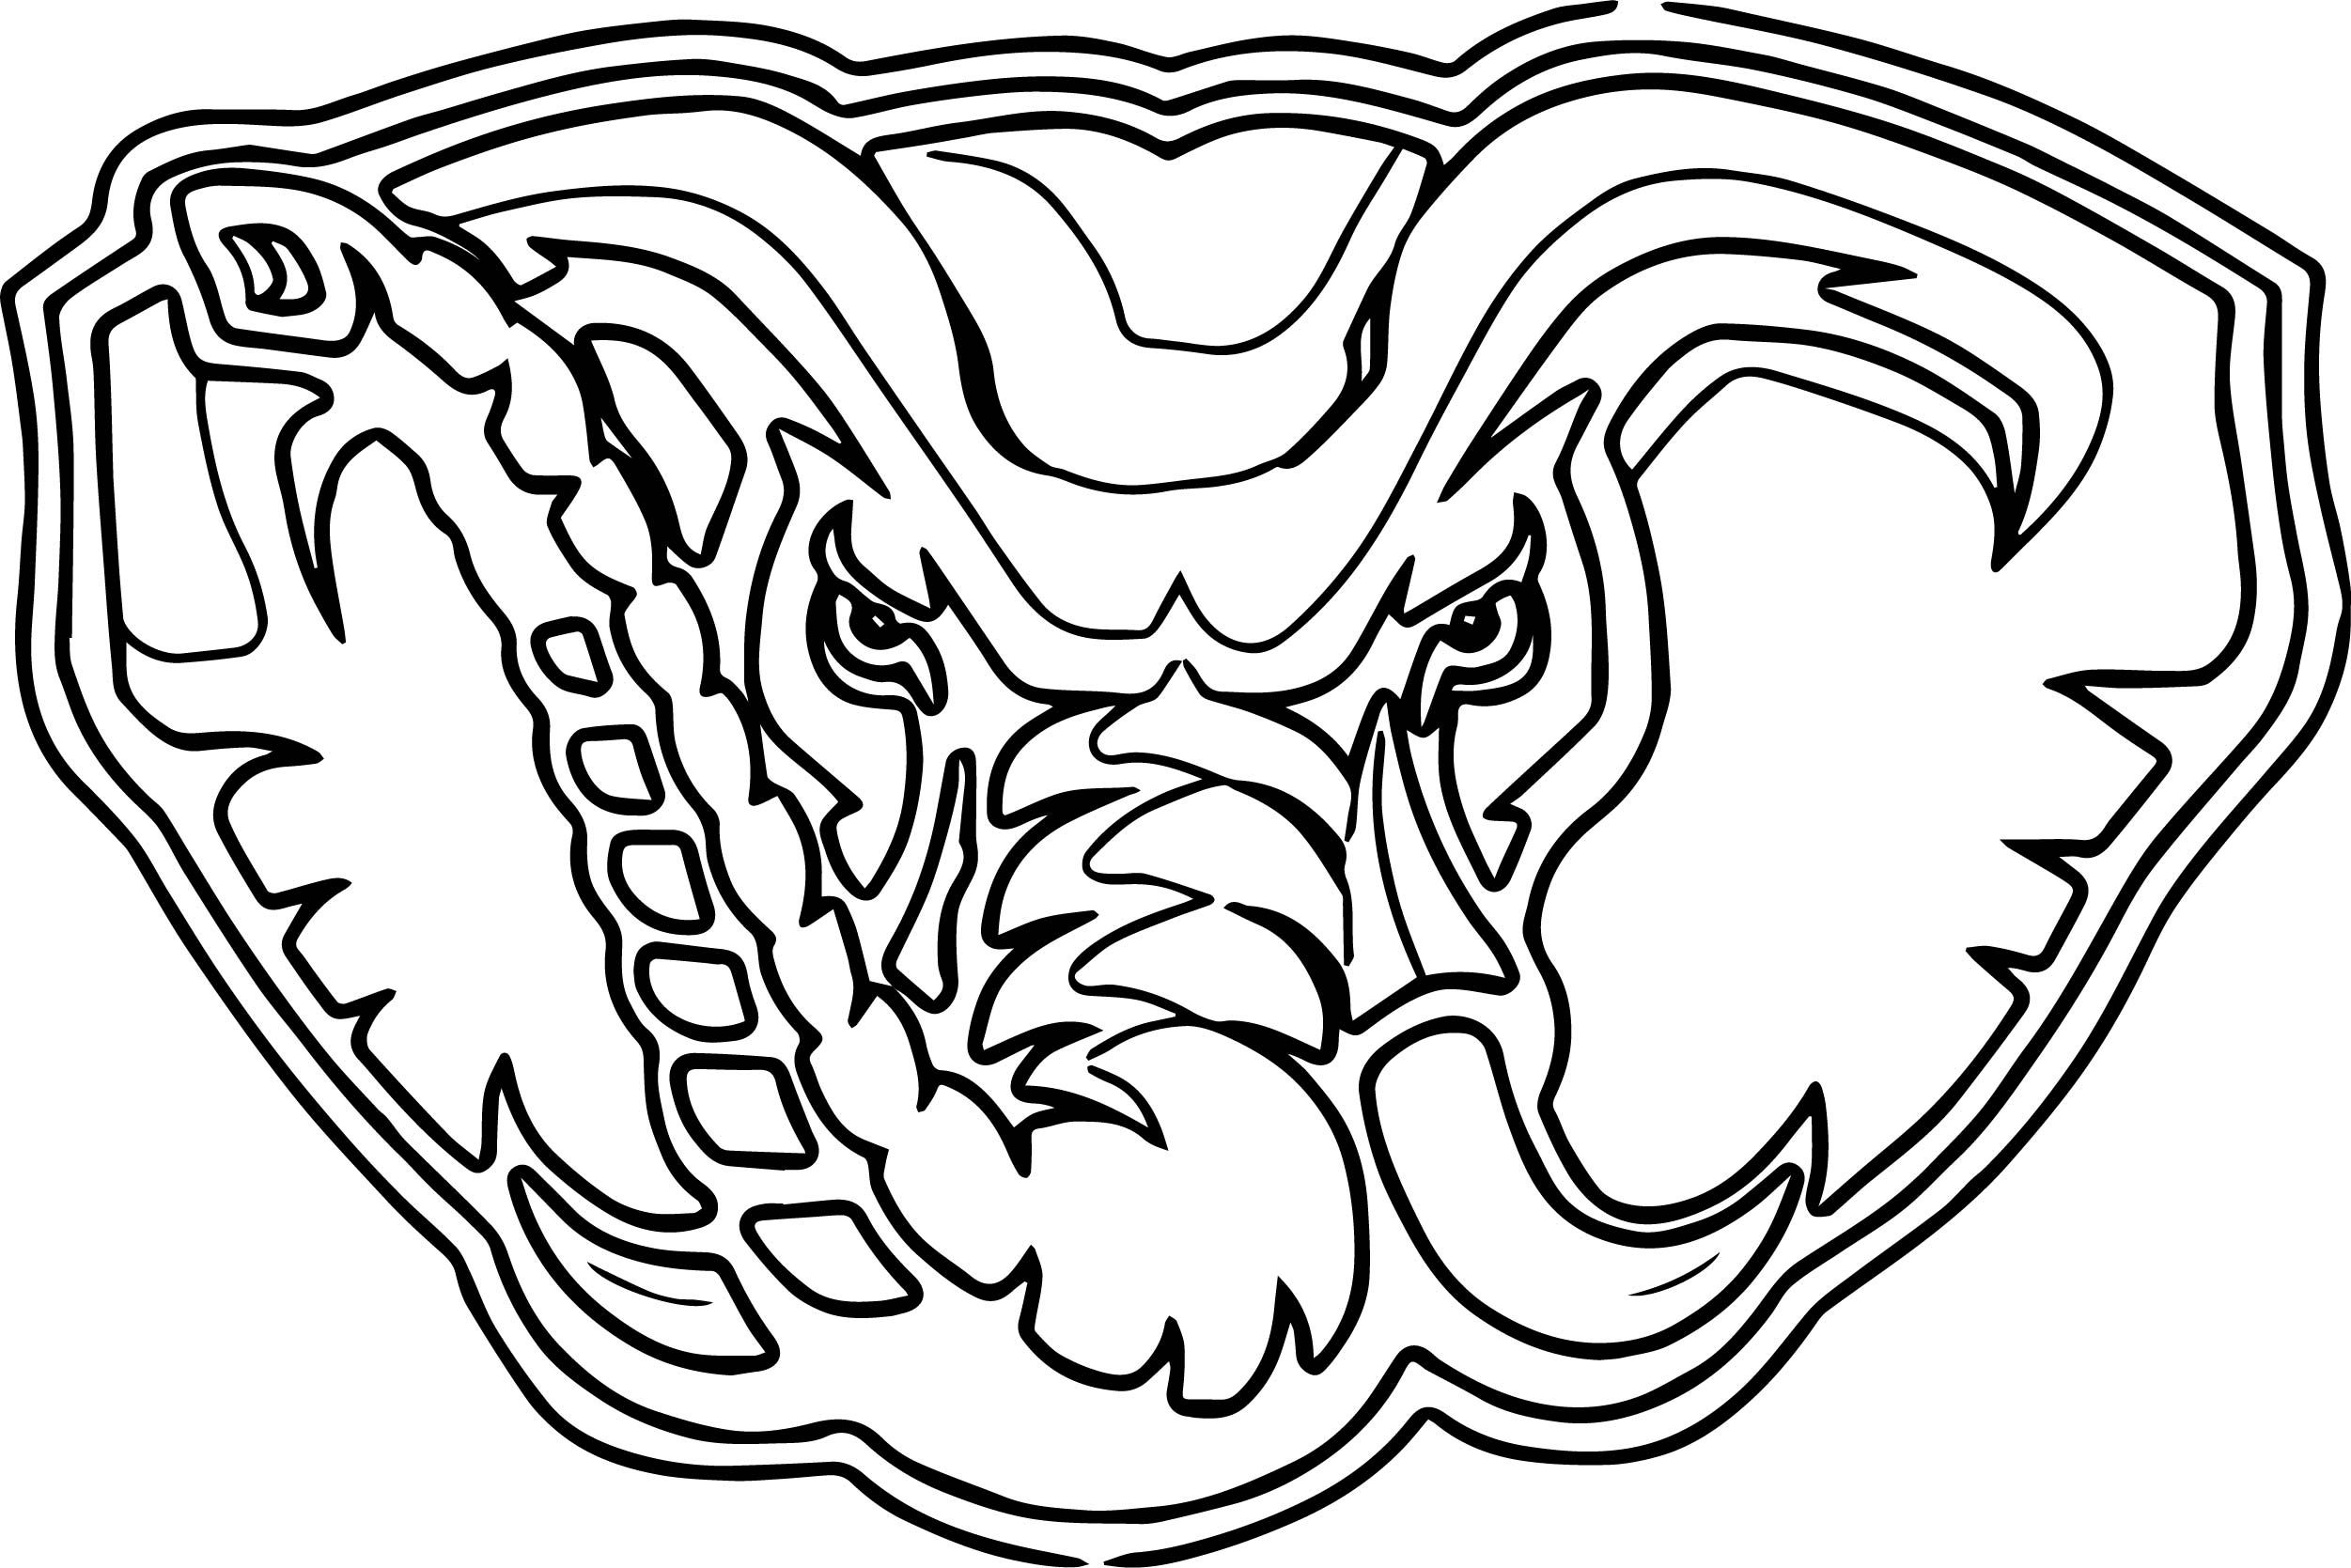 Cool Alabama Elephant Face Outline Coloring Page Elephant Face Face Outline Alabama Elephant